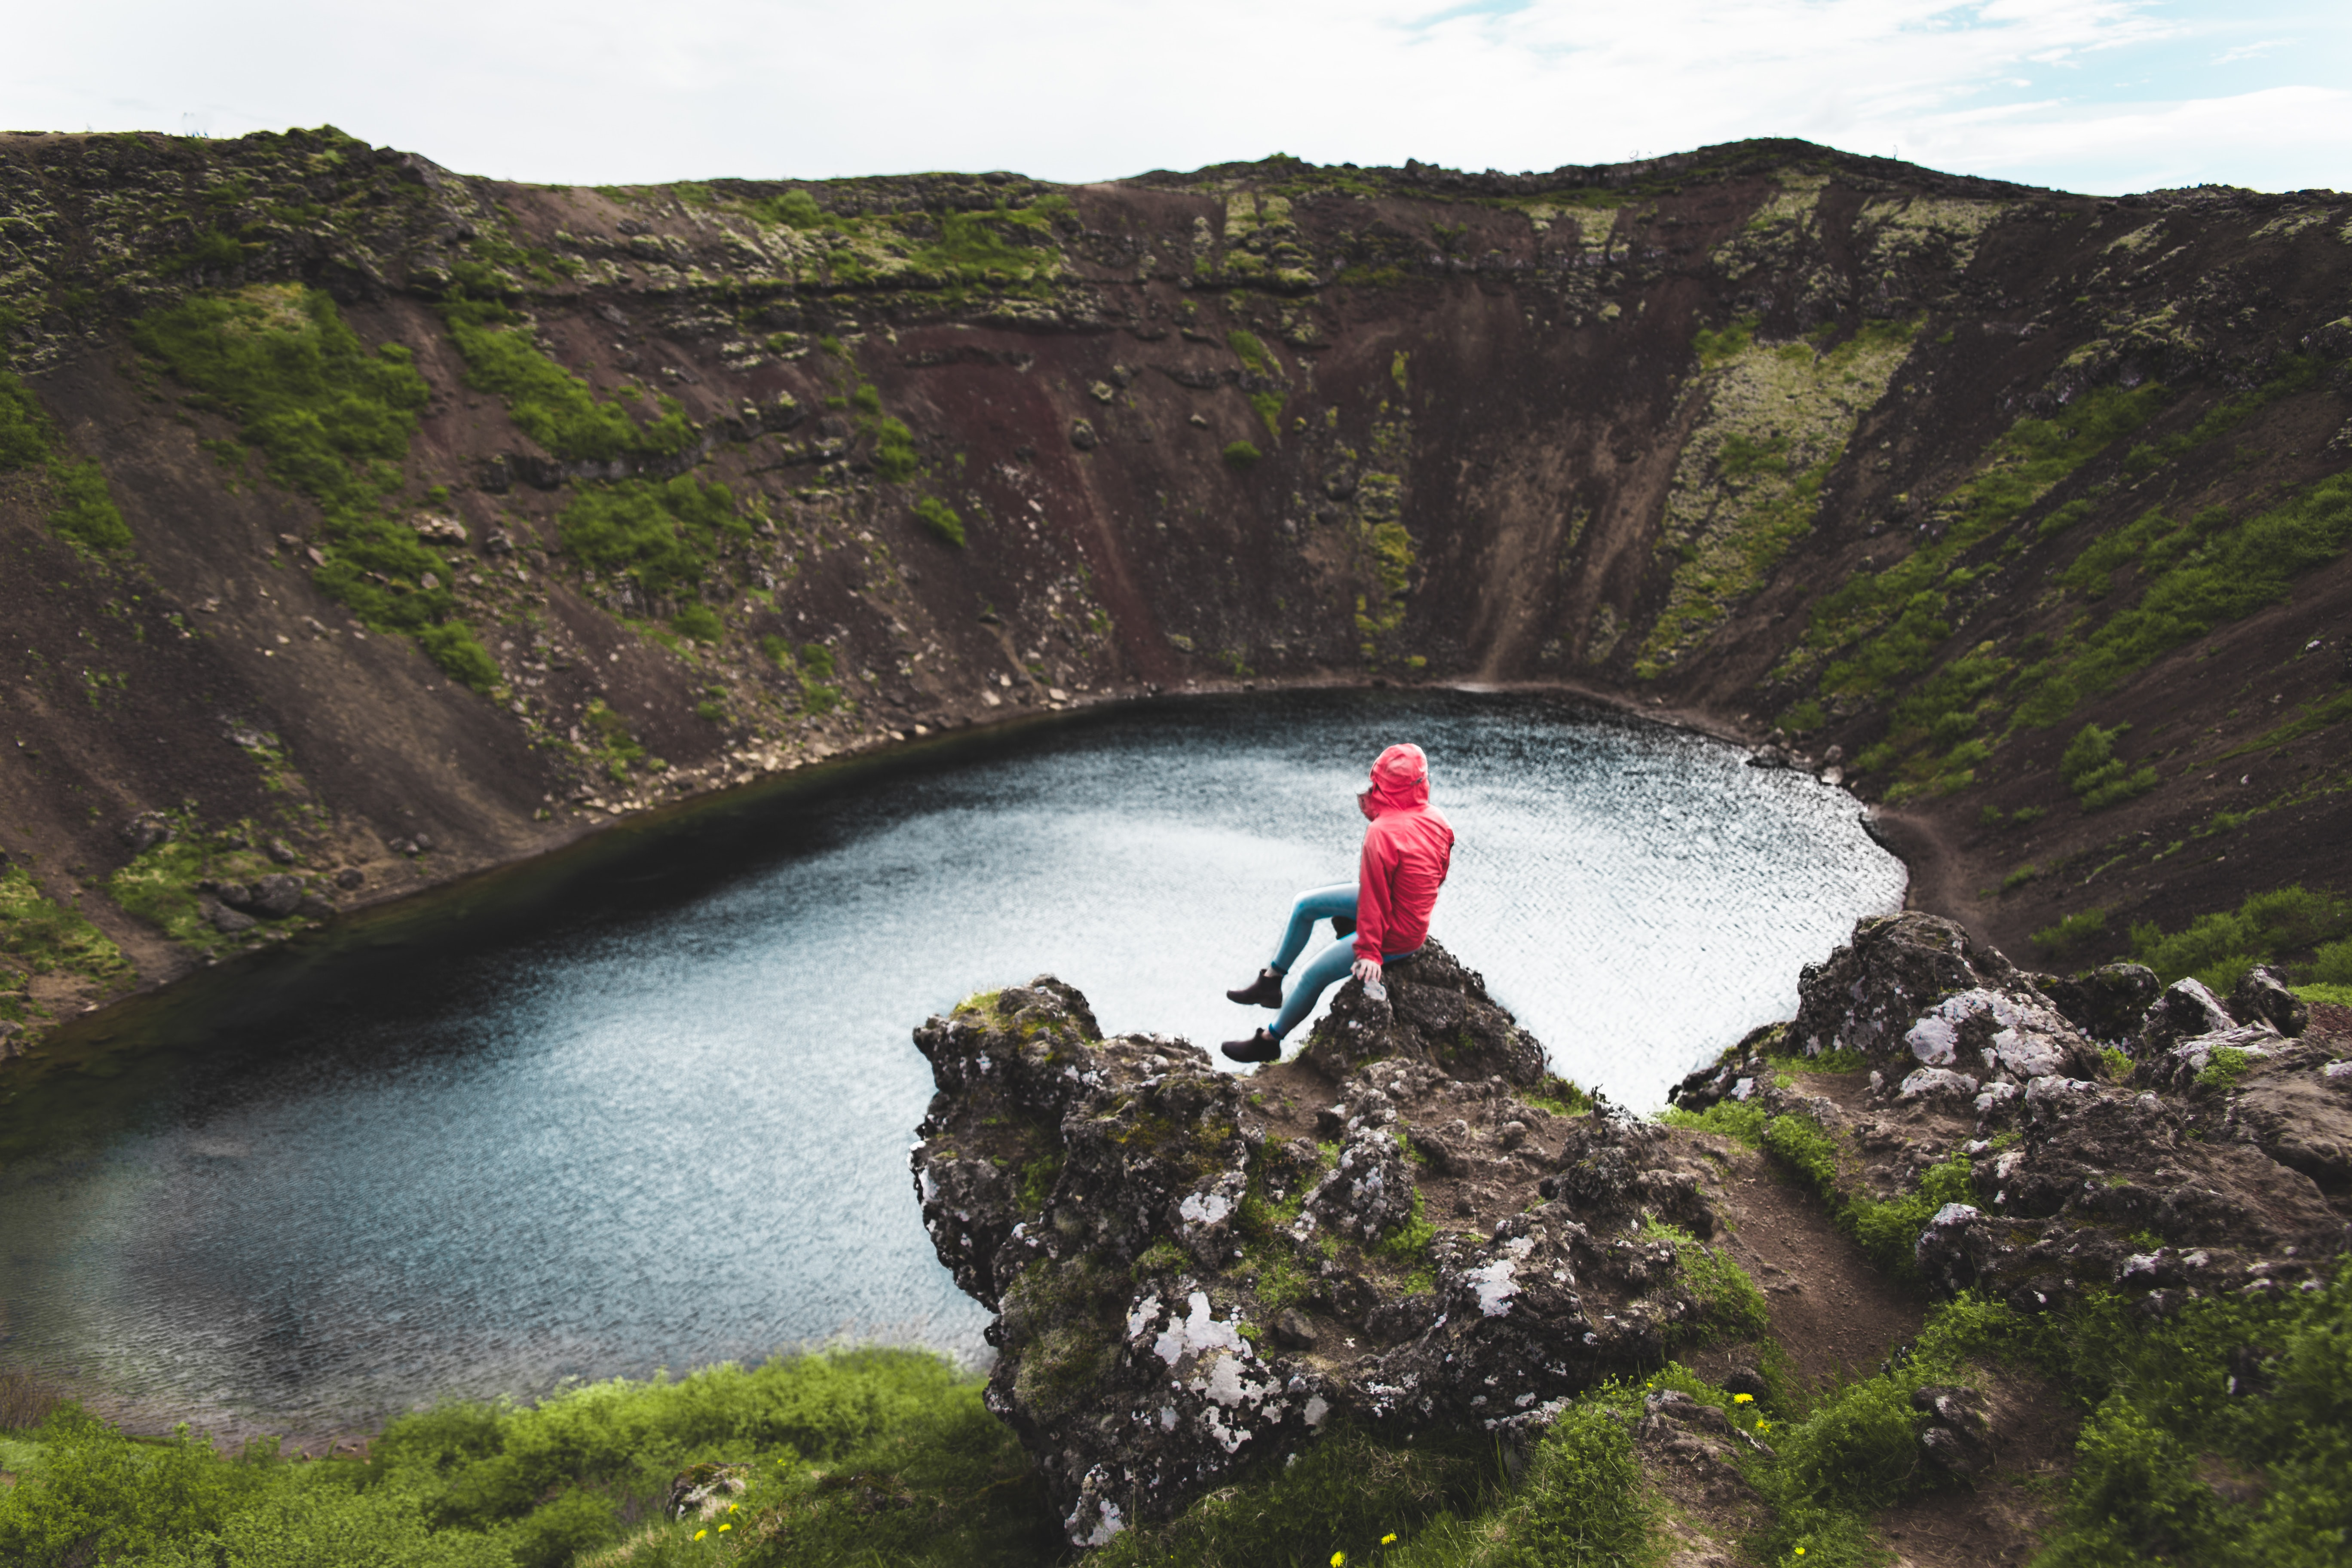 person wearing red hoodie on rock facing body of water